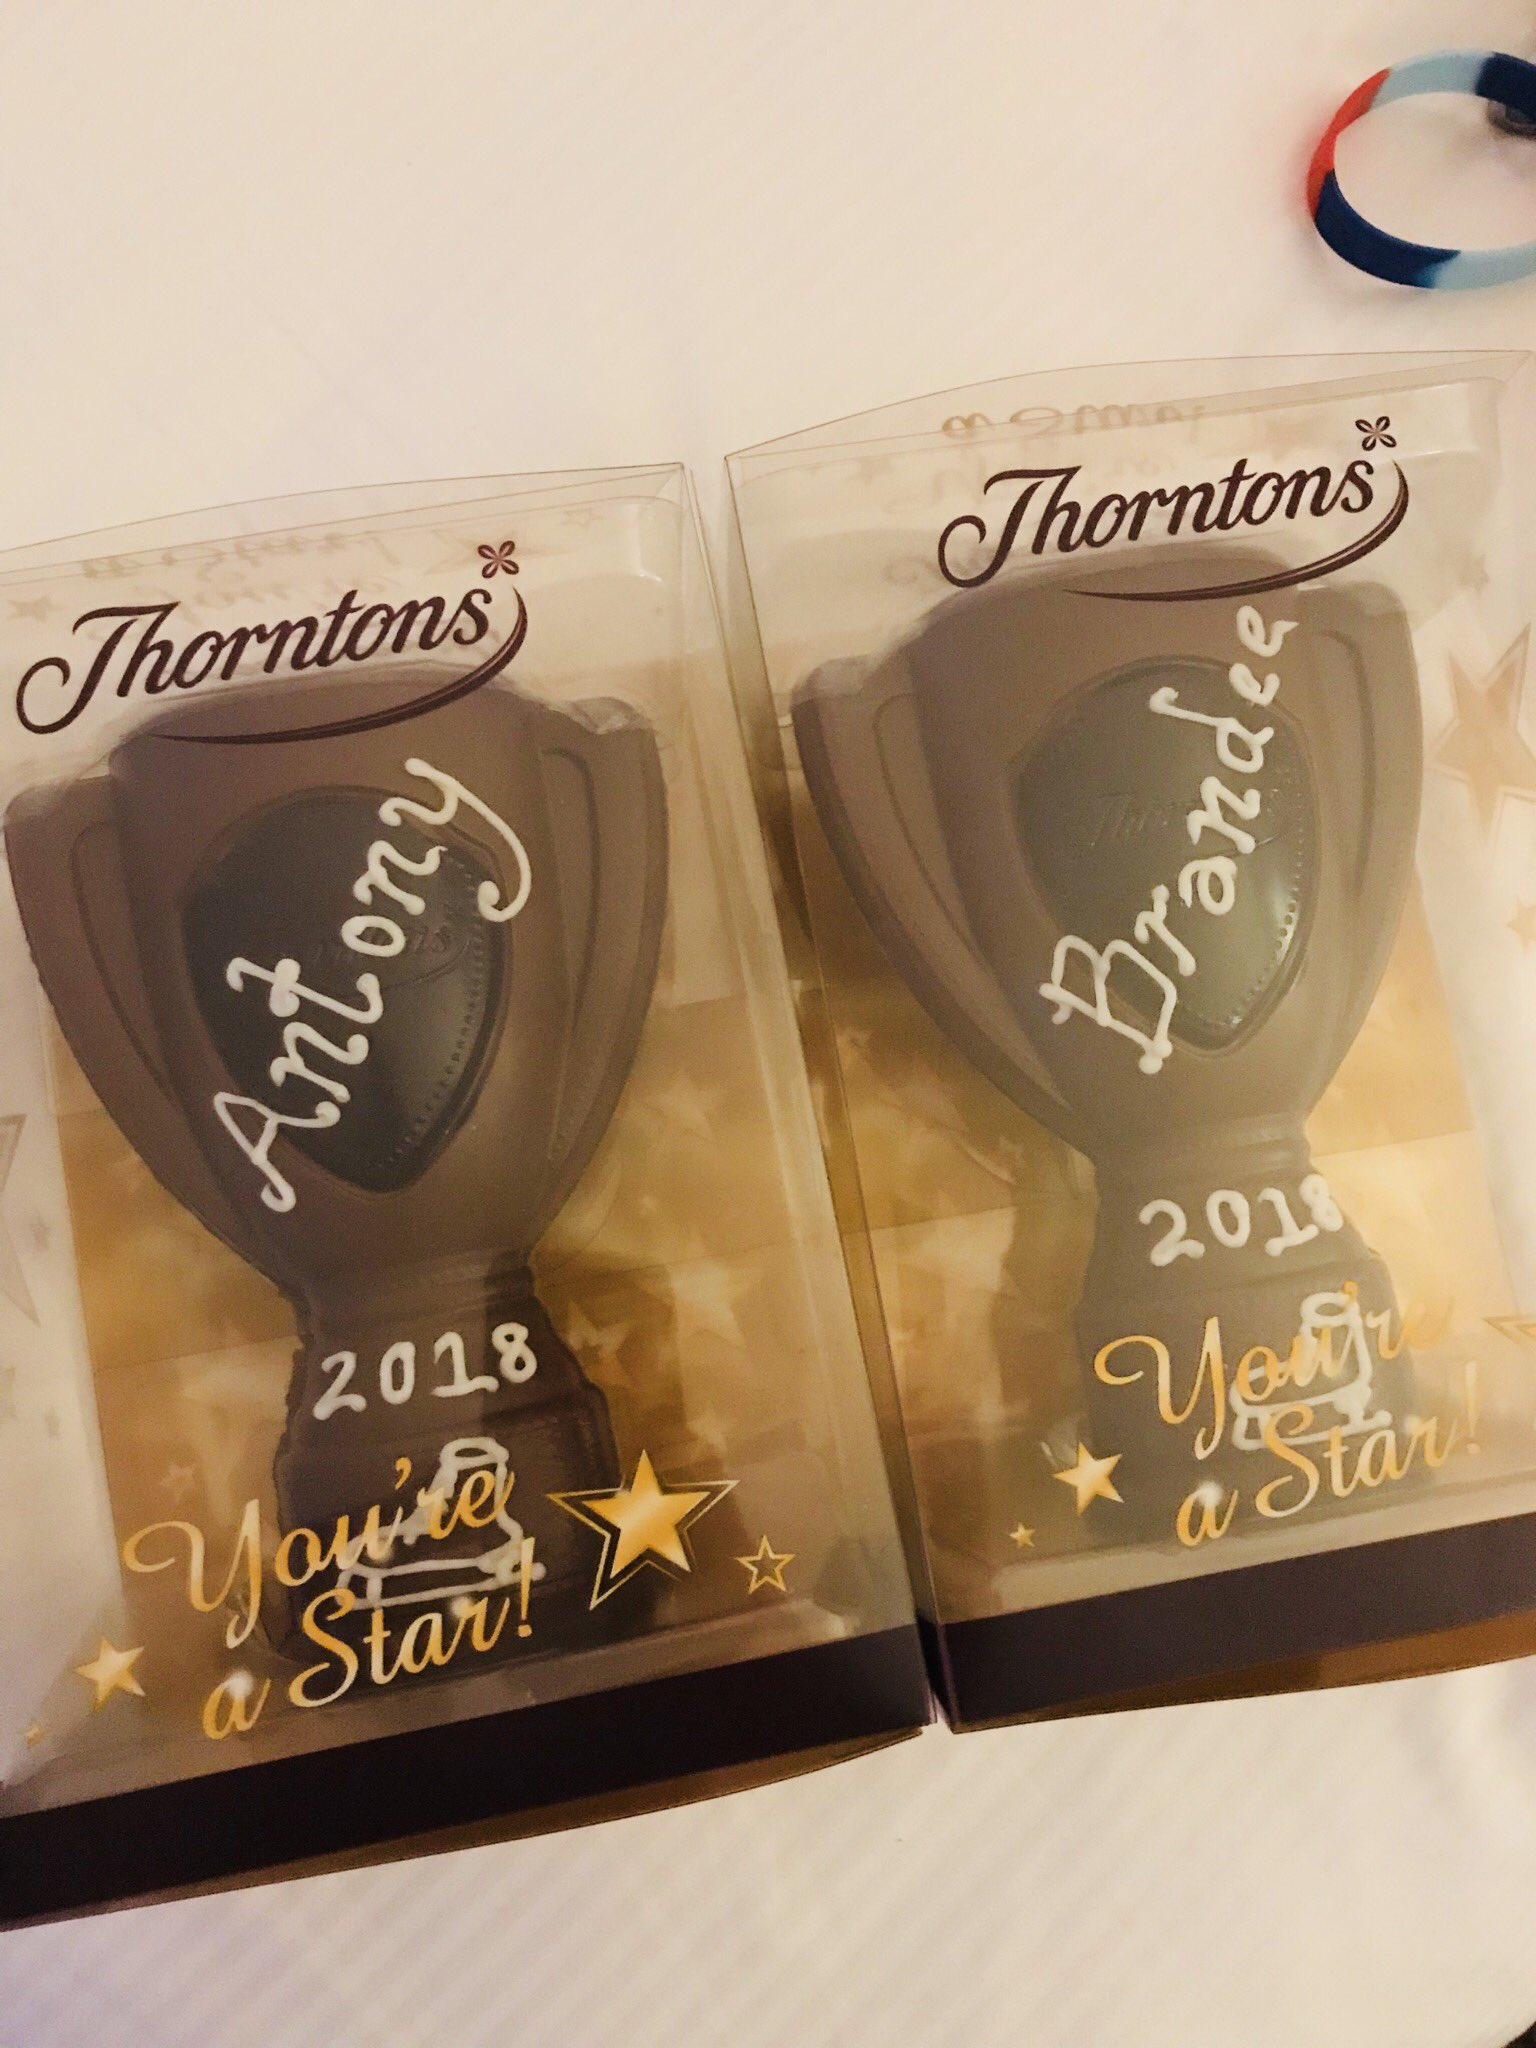 Look @YayItsBrandee - delicious @thorntonschocs gifts from @_pintsizehero!!! Thank you!!! https://t.co/DH24rbZK38